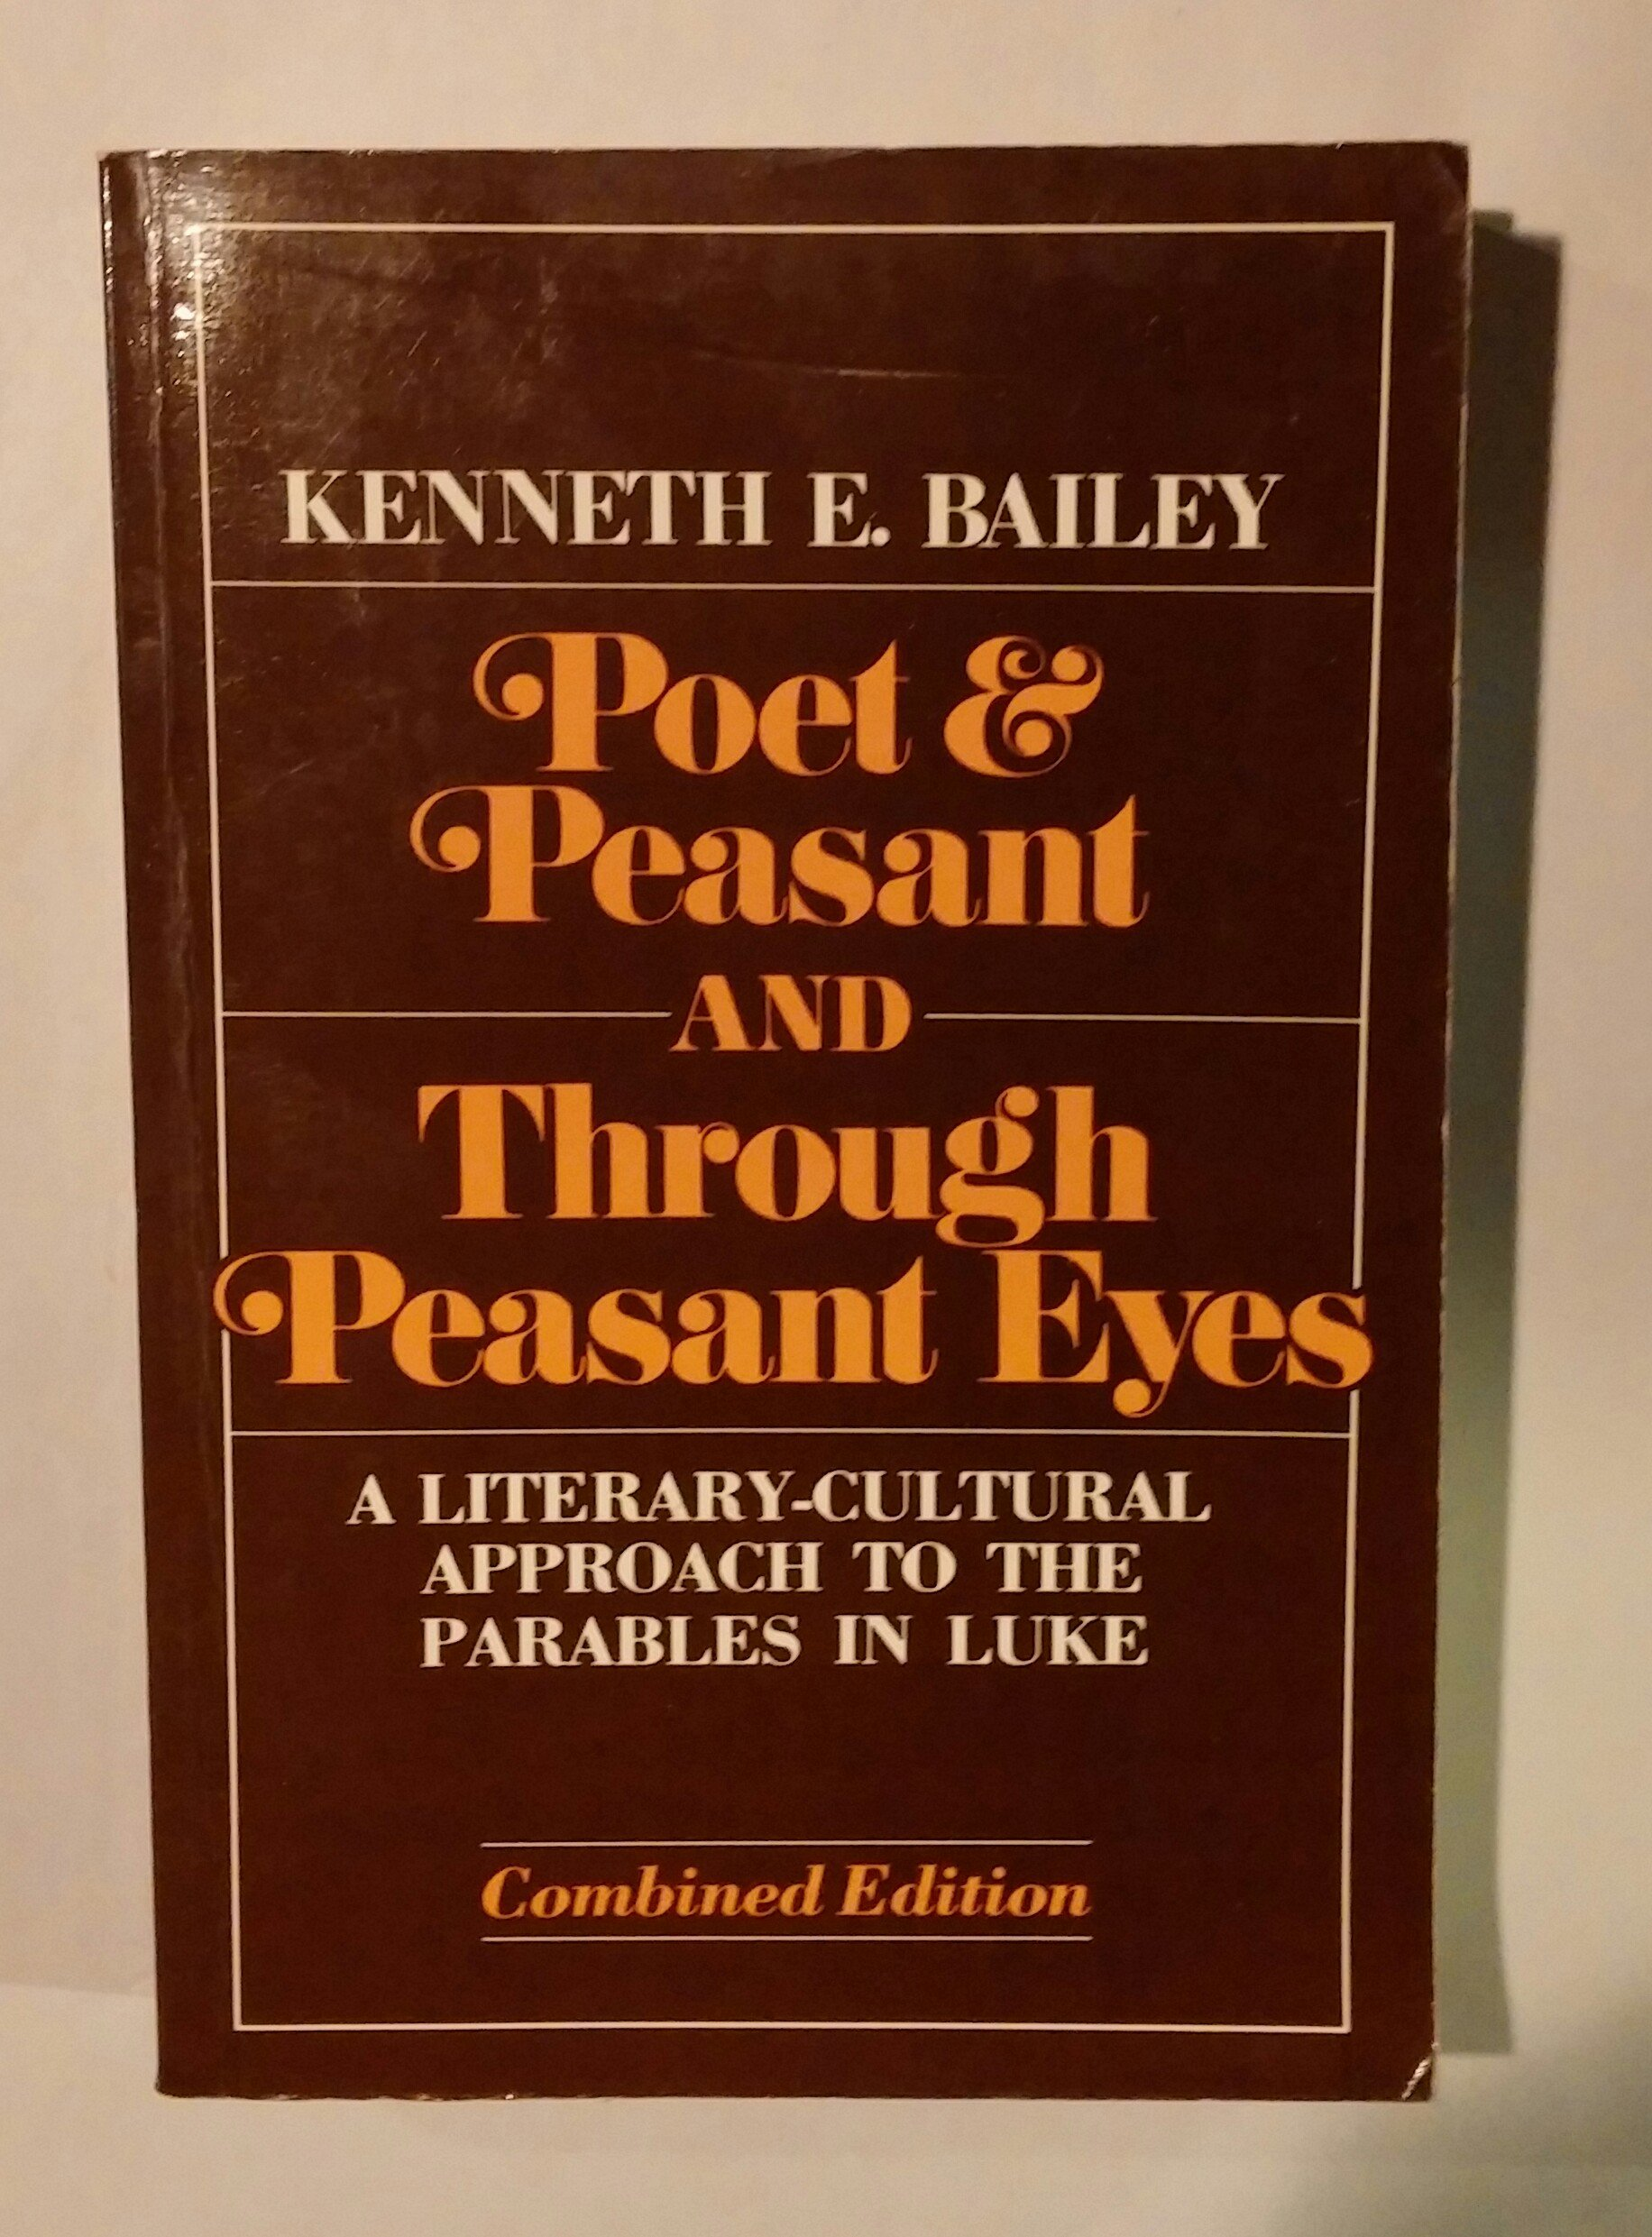 Through Peasant Eyes: A Literarycultural Approach To The Parables In  Luke,bined Edition, Two Volumes In One: Kenneth E Bailey: Amazon:  Books